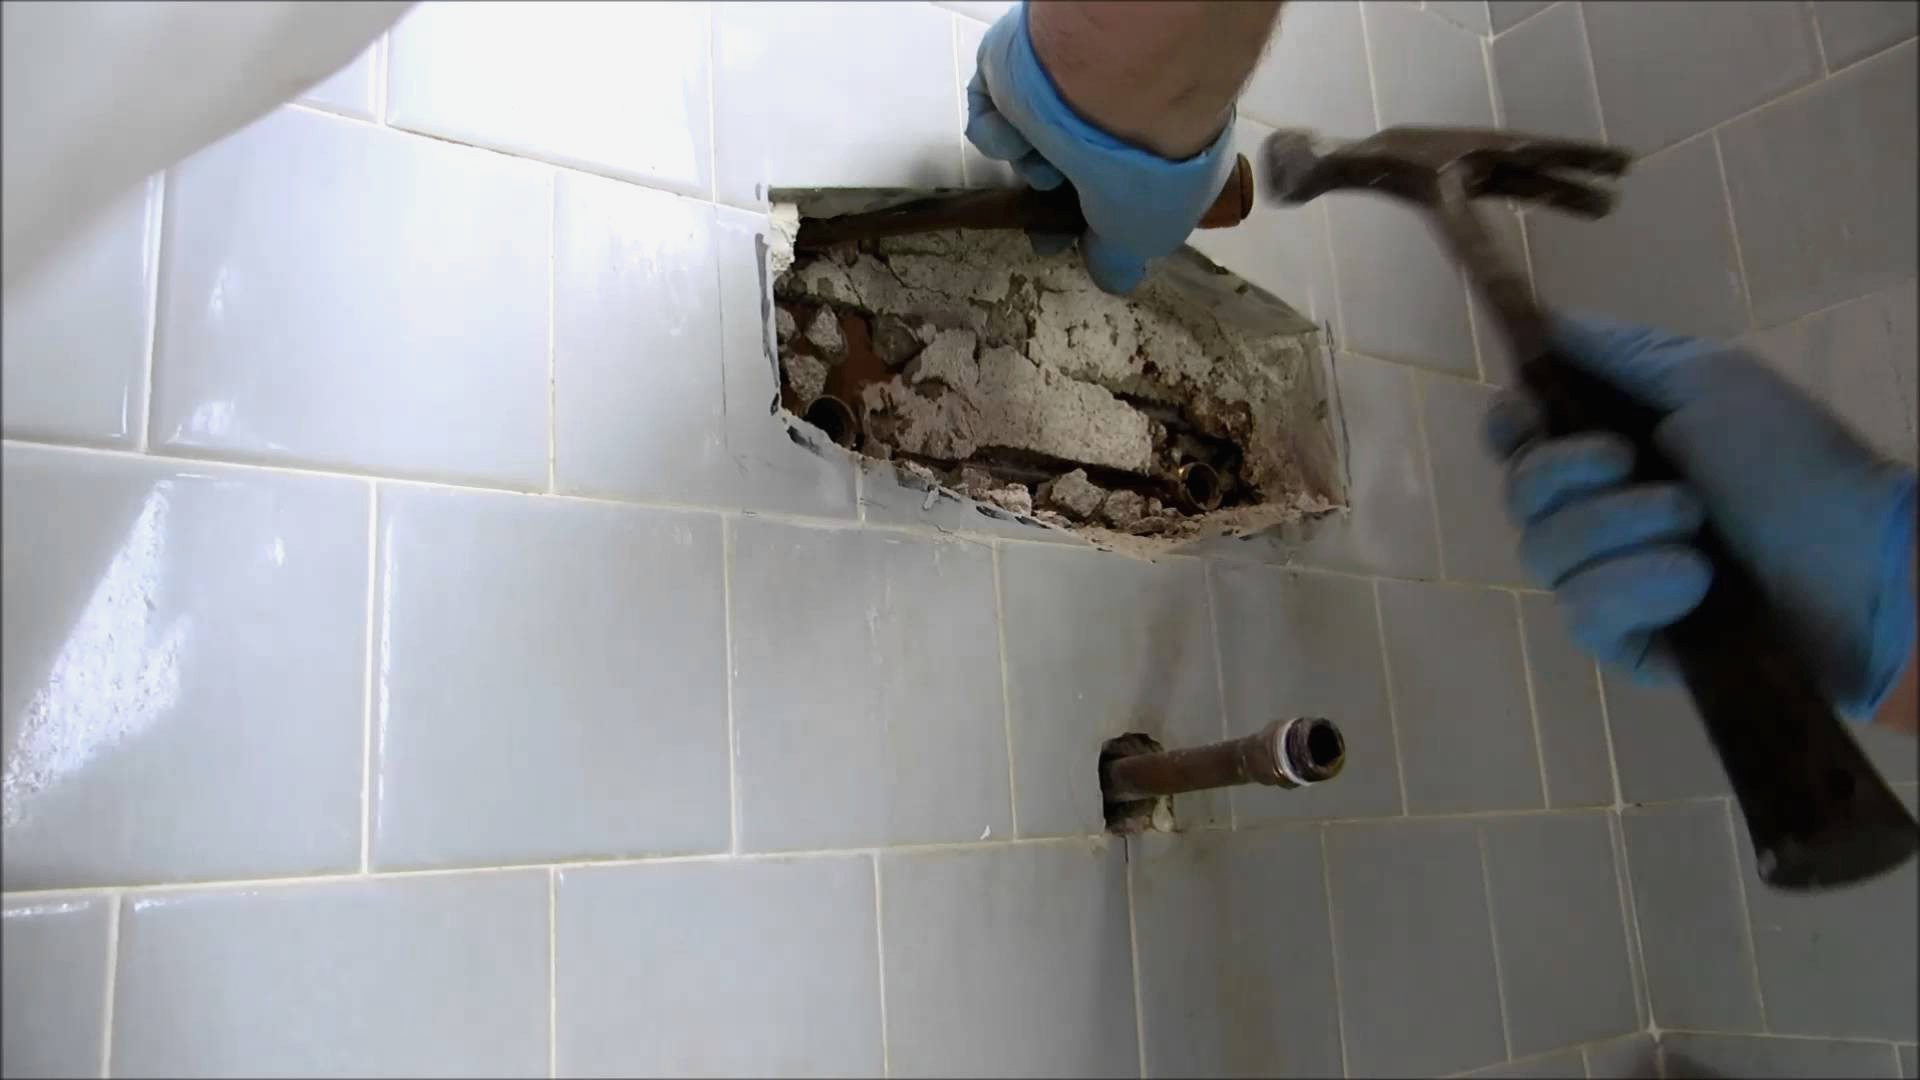 How to repair a bathroom wall after removing tile archives bathroom design ideas gallery image for How to remove tile wall in bathroom